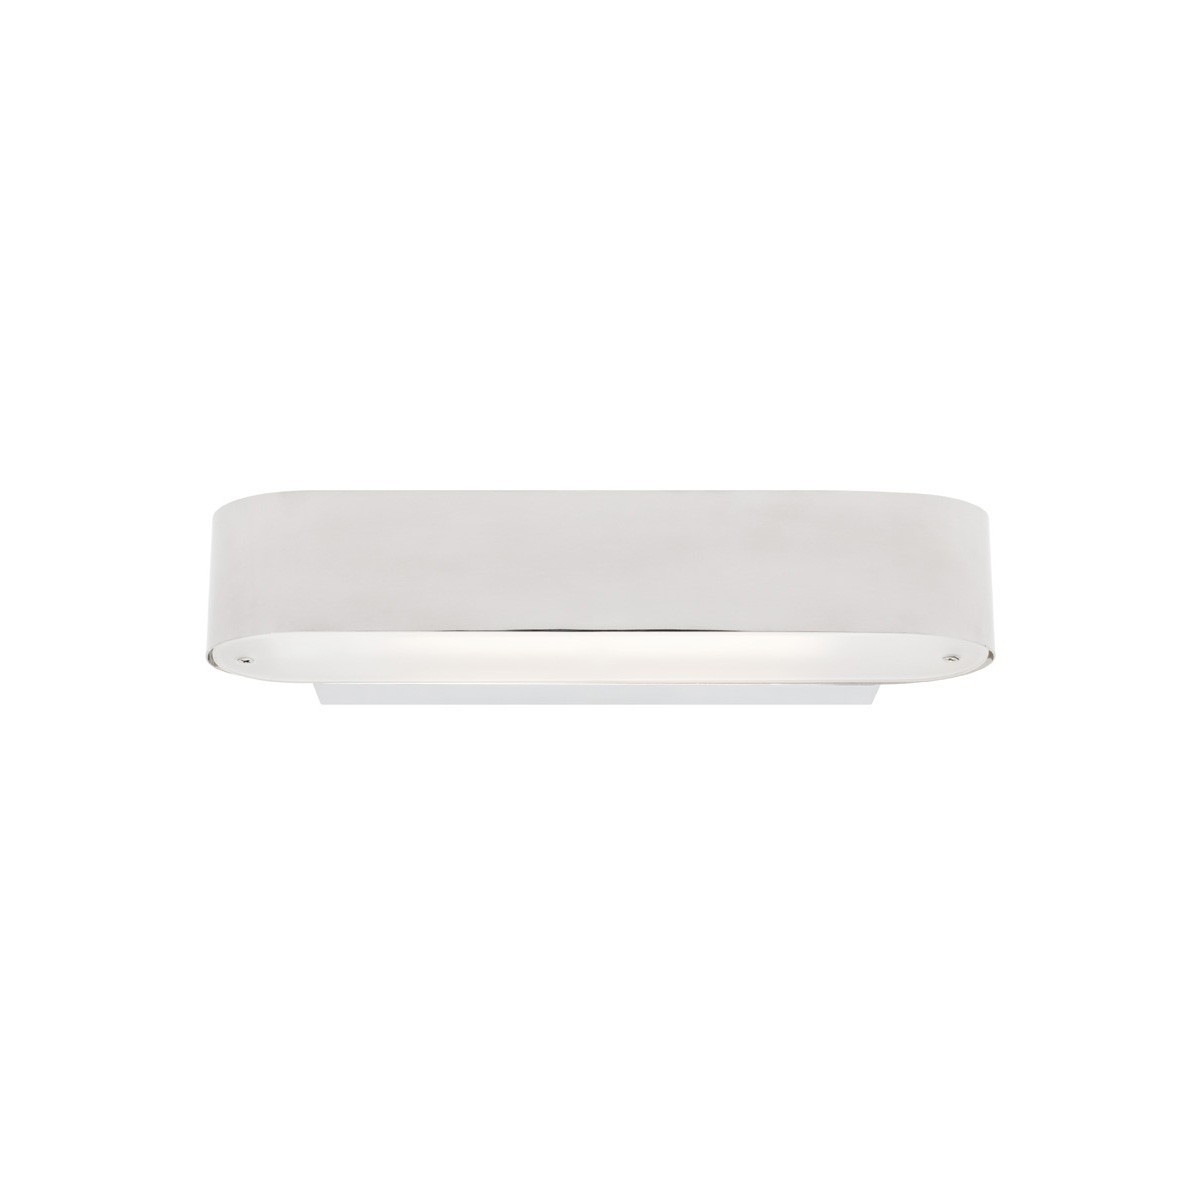 Fahrenheit PL Wall Light, Small